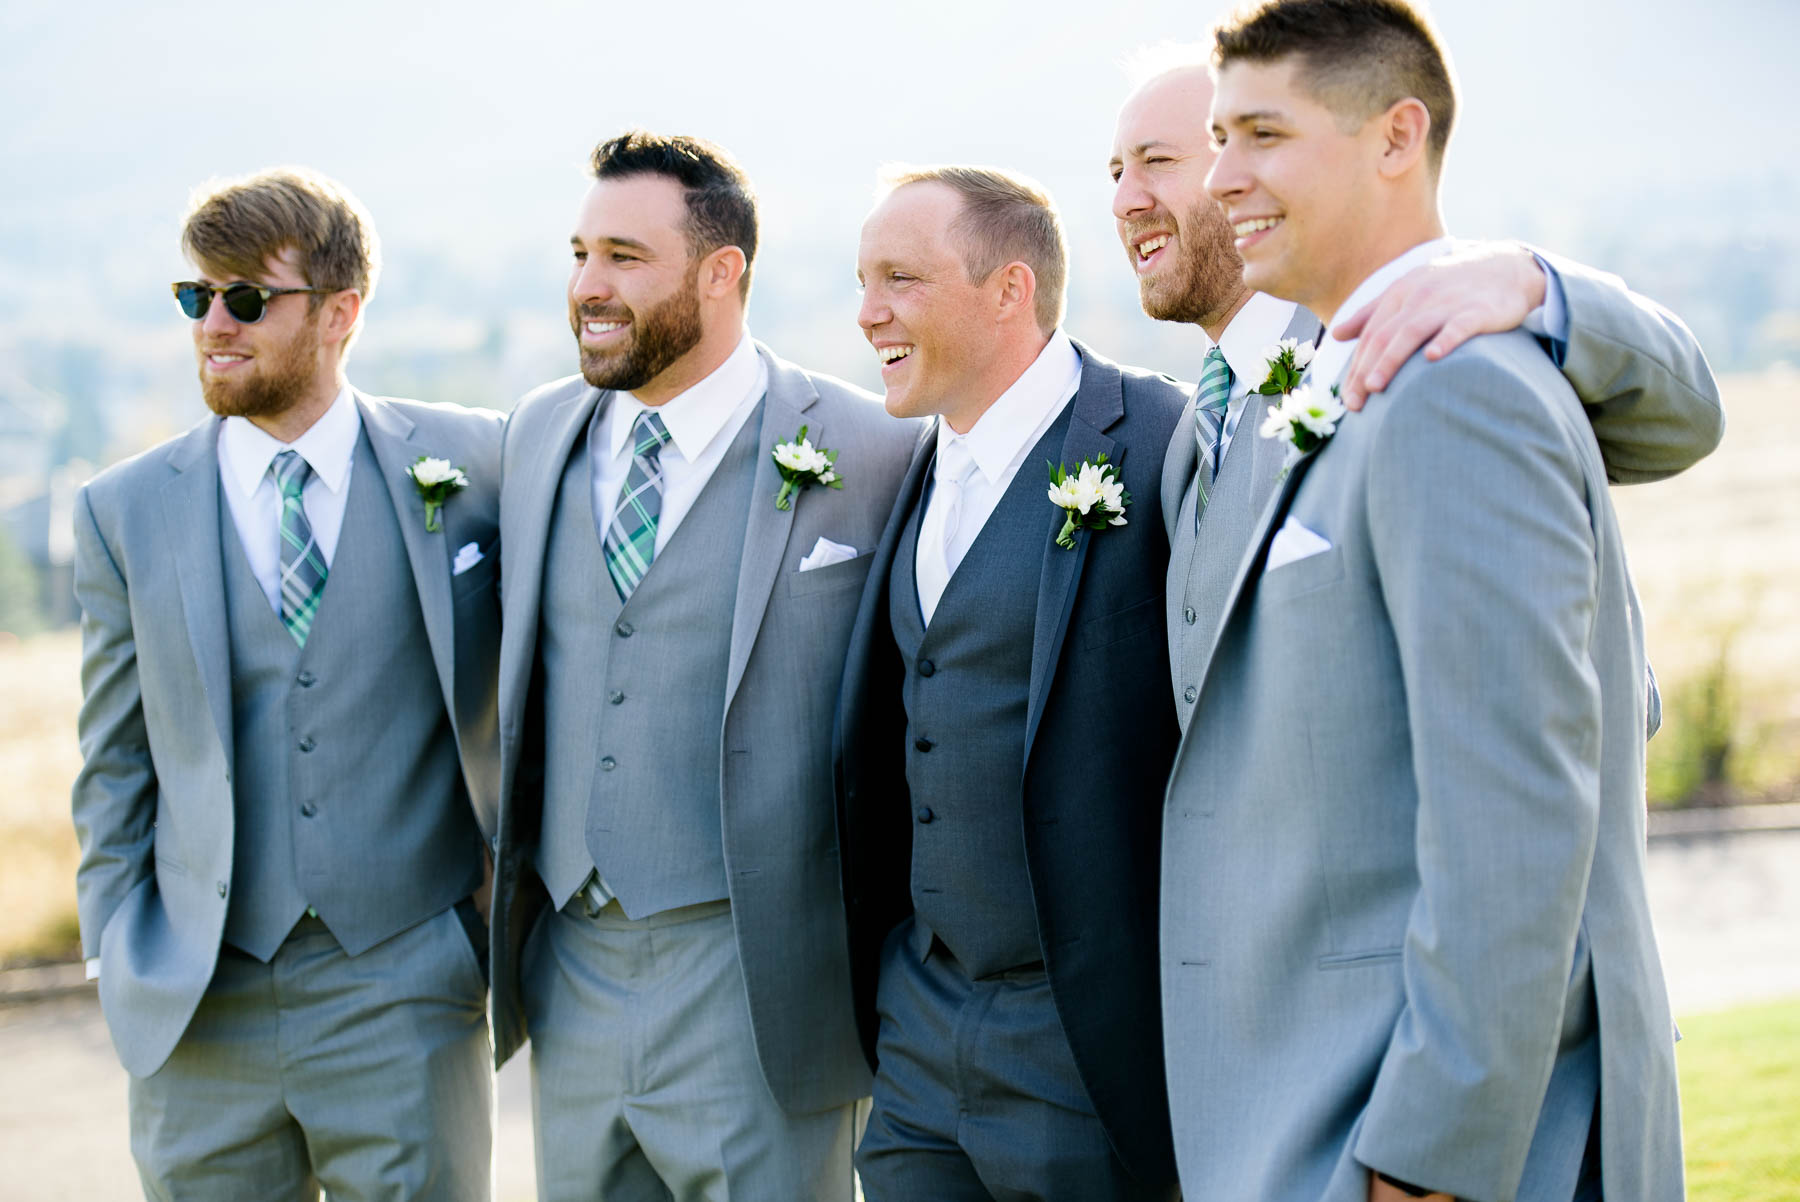 Groomsmen share a laugh during photos on the wedding day at the Manor House in Littleton, Colorado.